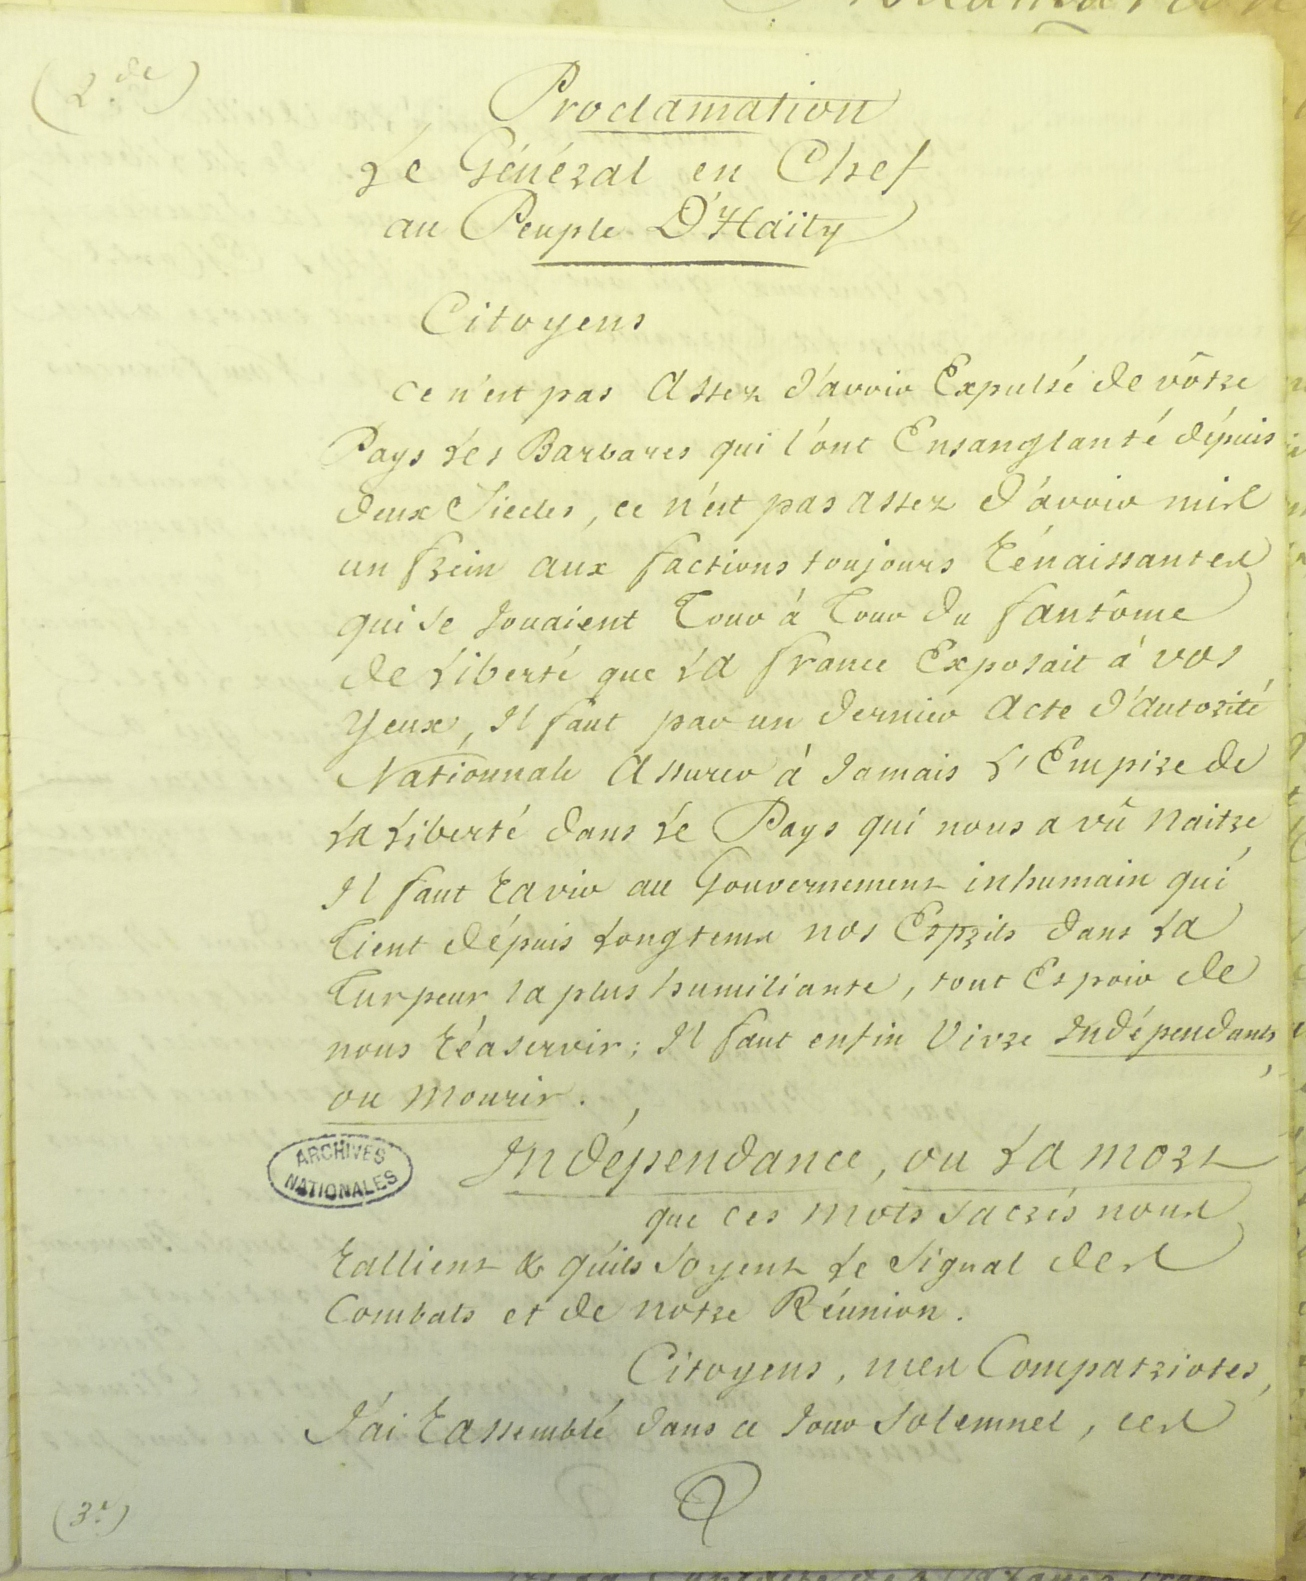 The Many Meanings Of The Haitian Declaration Of